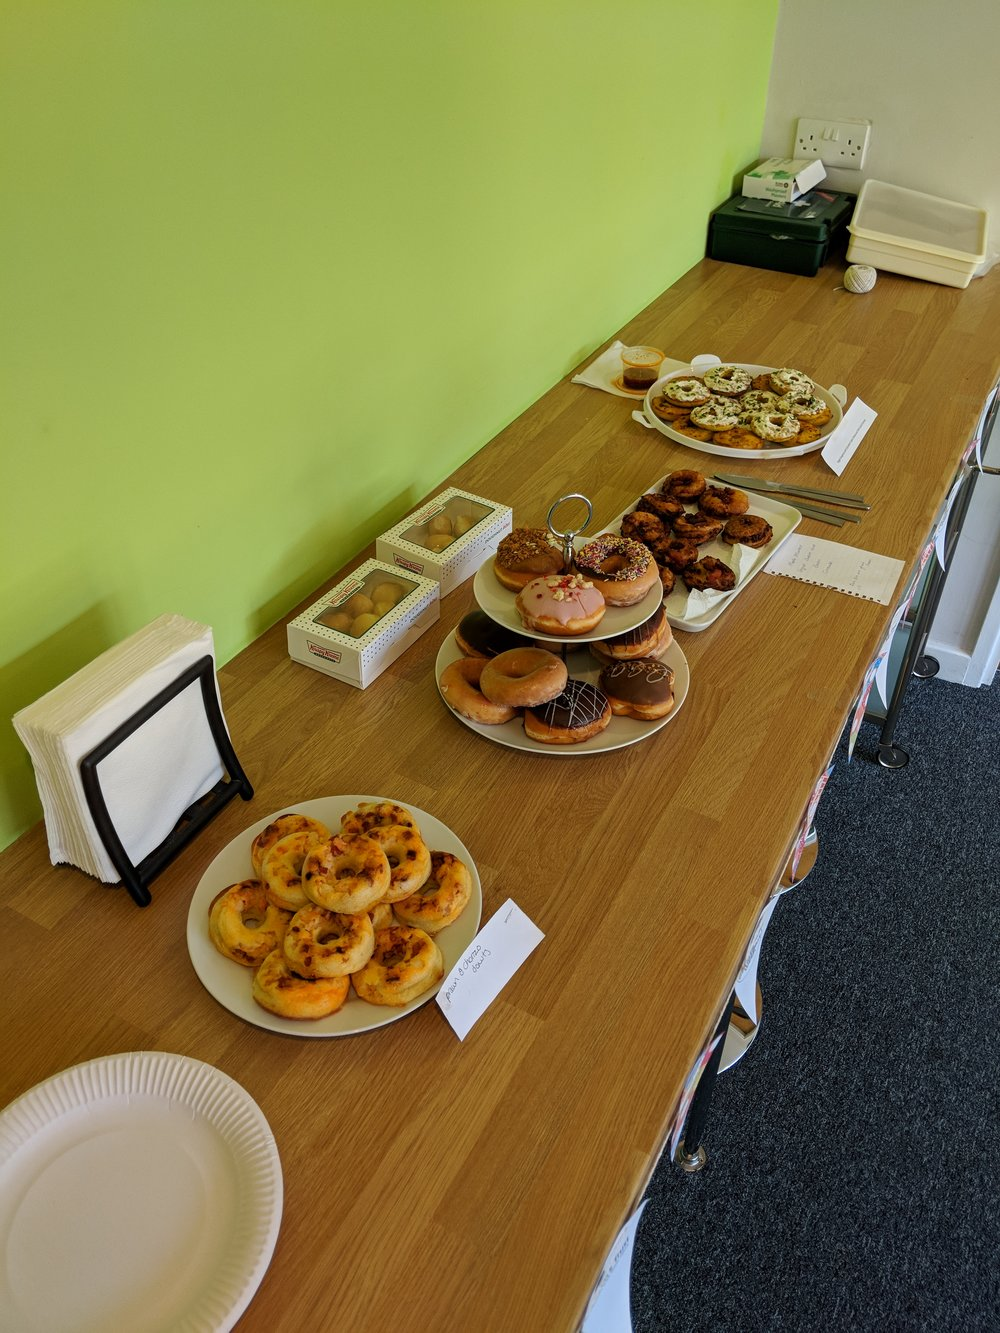 Just some of the tasty Doughnuts created by the team! (Sneaky Krispy Kreme box too)